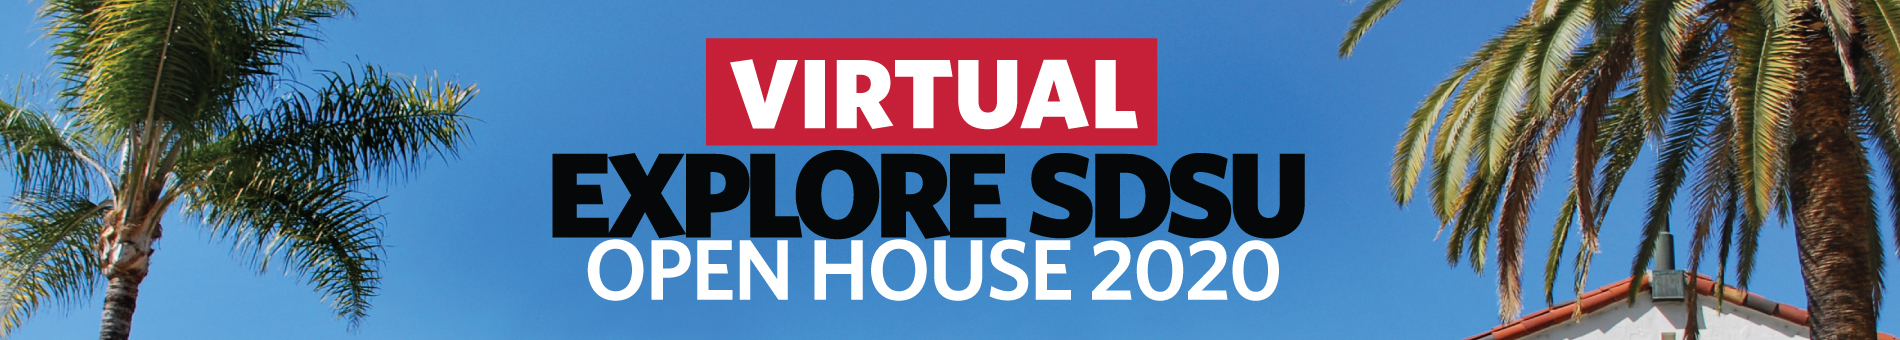 Virtual Explore SDSU Open House 2020